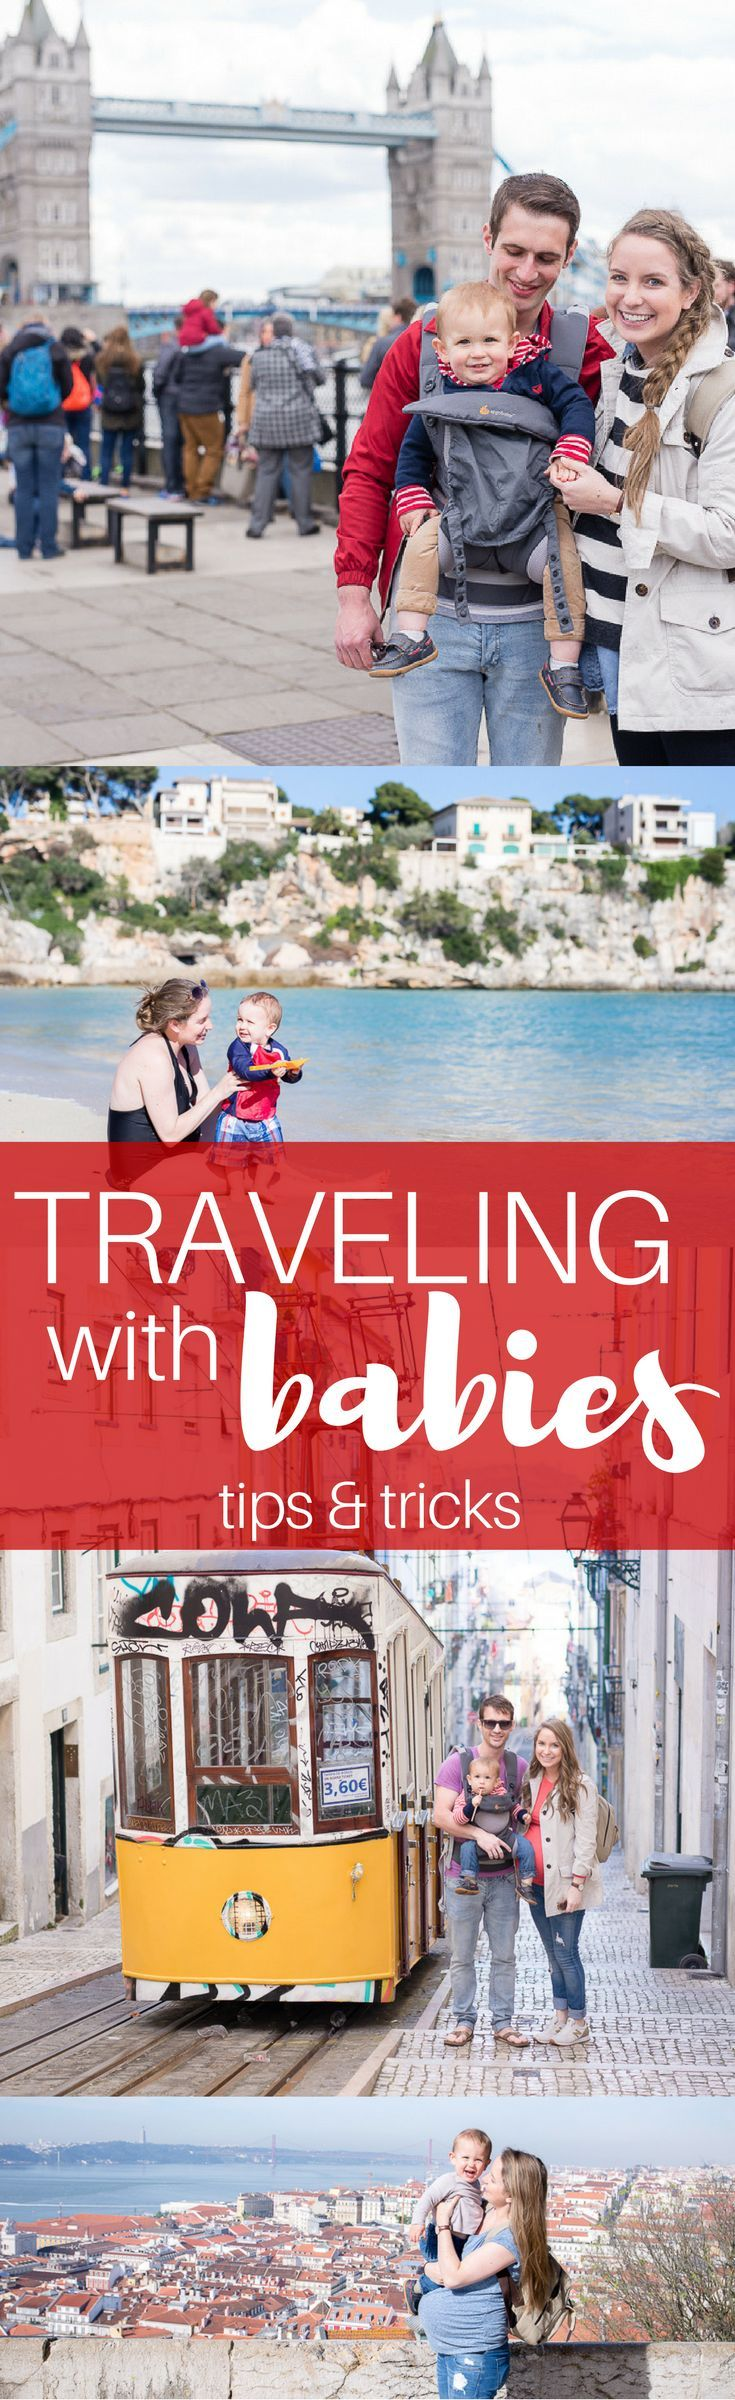 traveling with a baby soon? check out these tips and tricks that will make your life (and theirs!) so much easier.